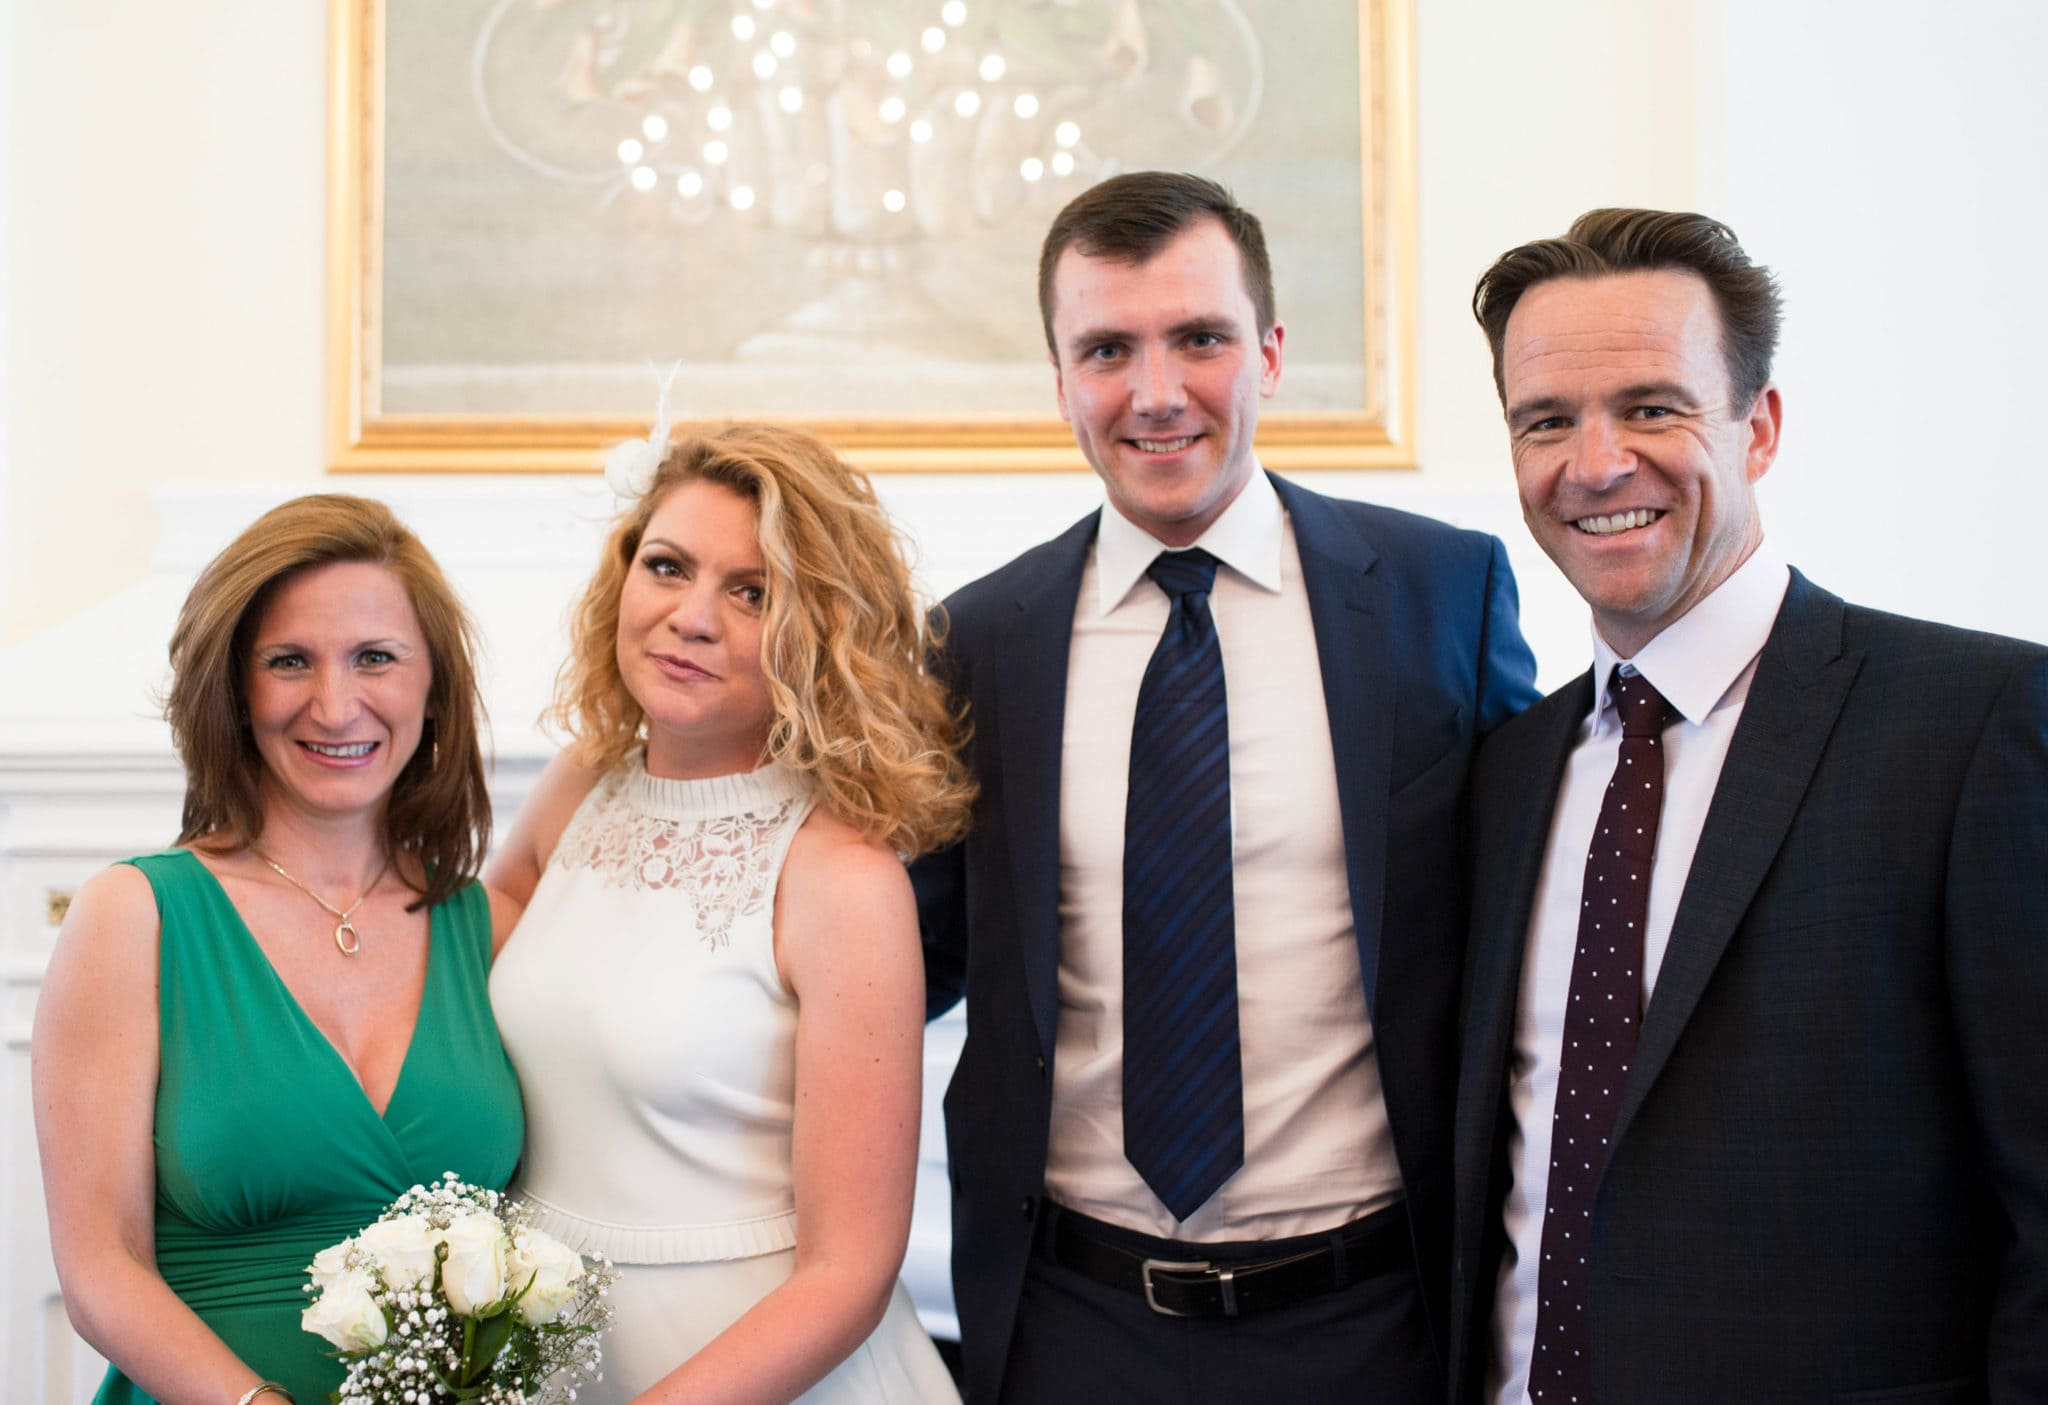 bride and groom Bromley on Bow Registry office, London UK Wedding photography ceremony room with the guest